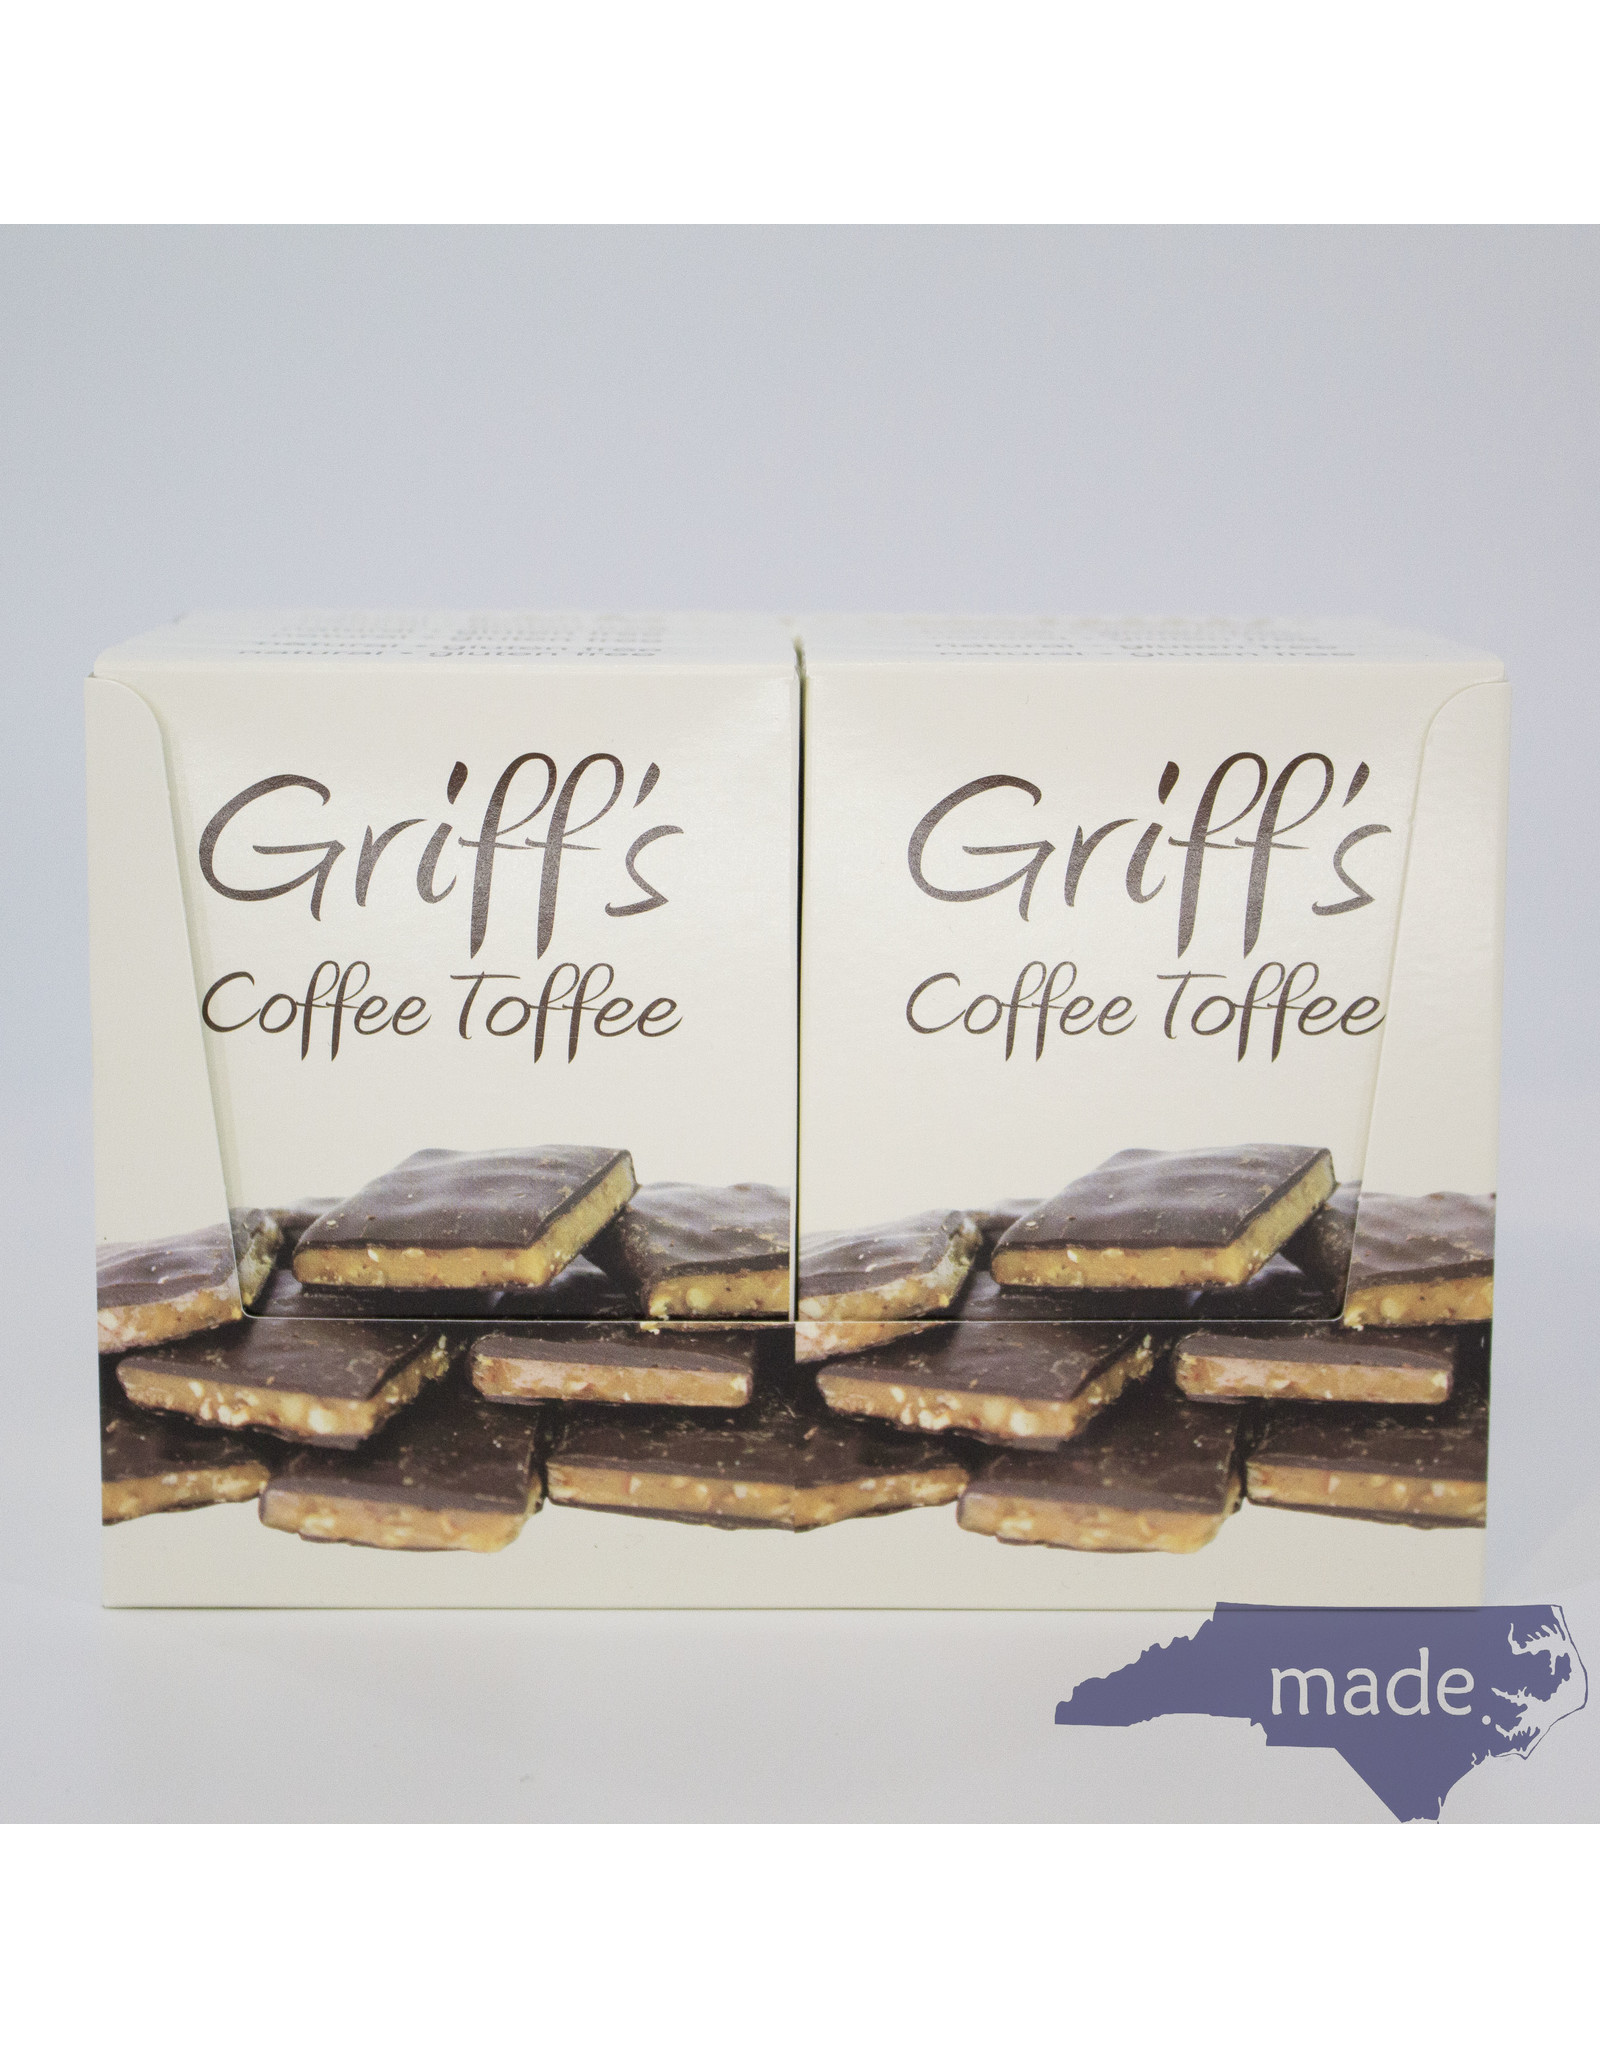 Chapel Hill Toffee 12-pk of Griff's Coffee Toffee (2 oz.) - Chapel Hill Toffee